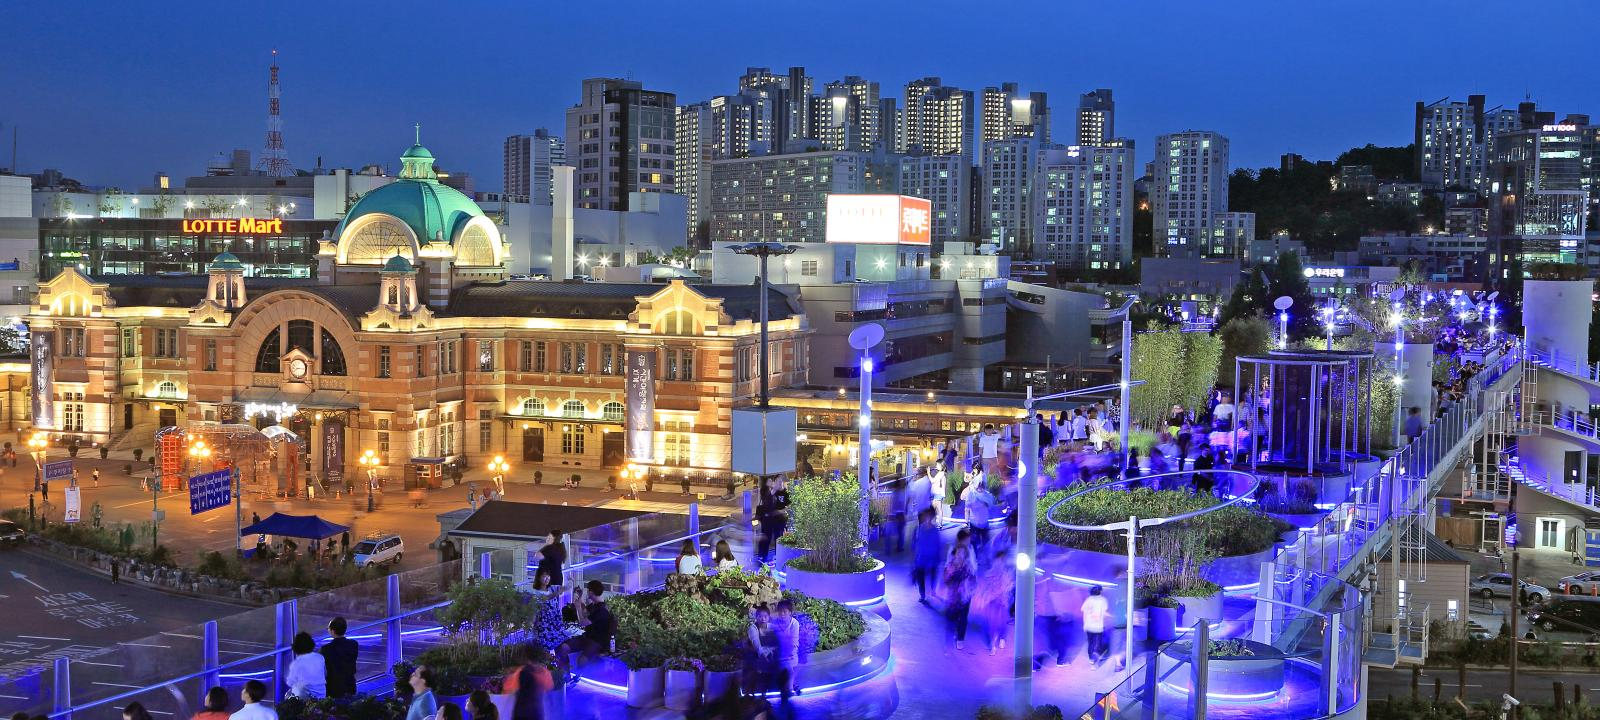 Illuminated roof garden in the city at night